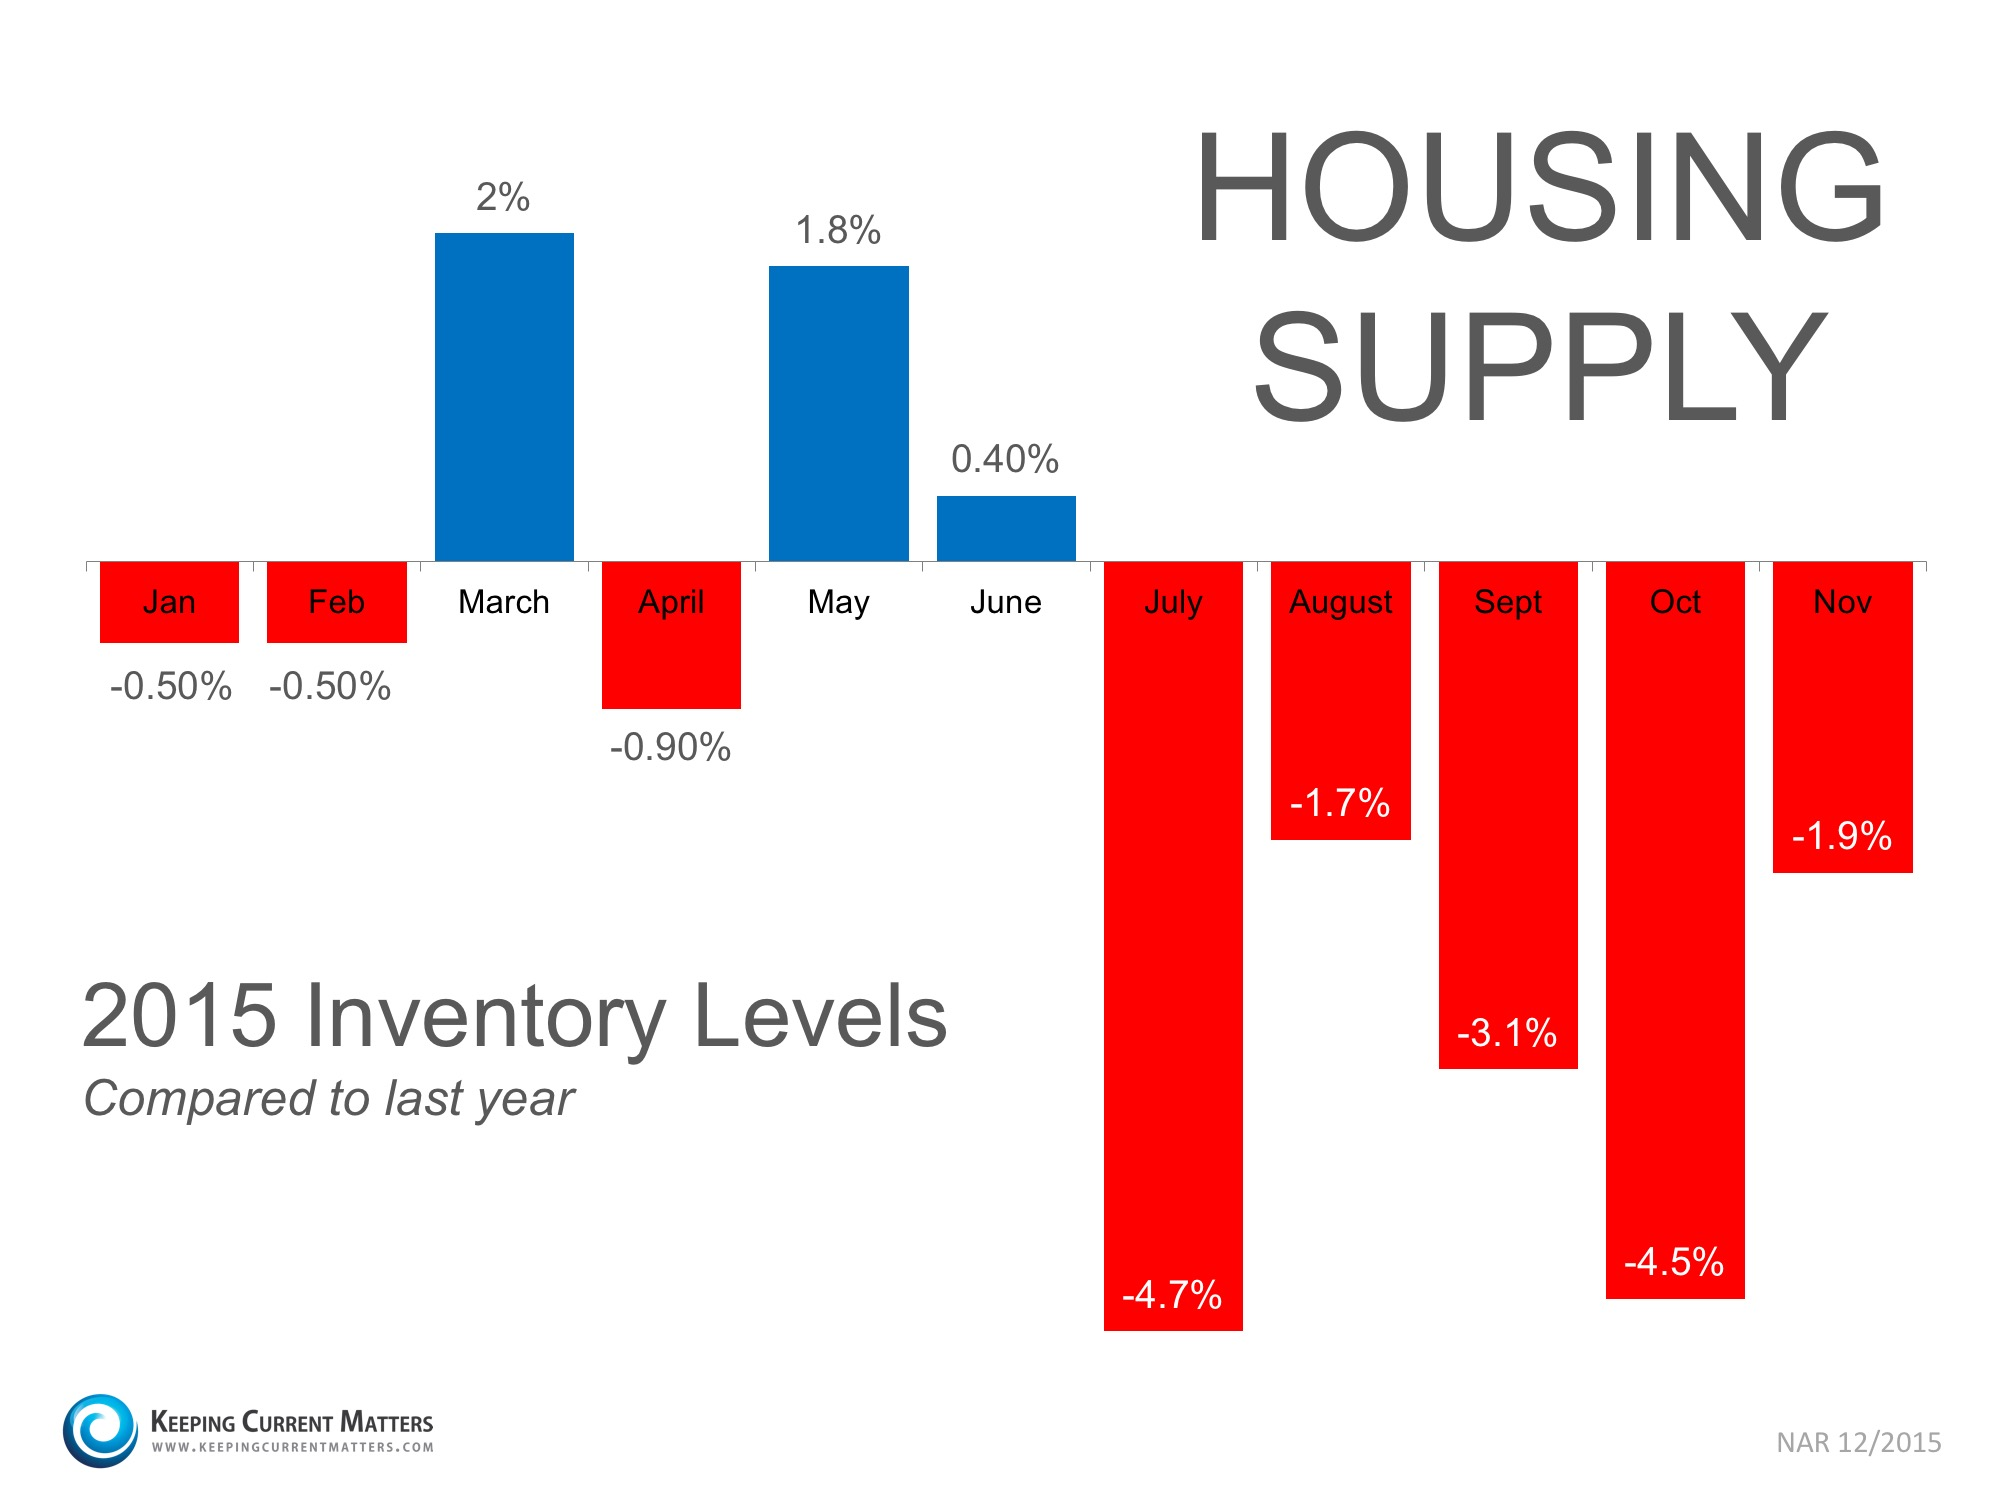 Housing Supply Year-Over-Year   Keeping Current Matters